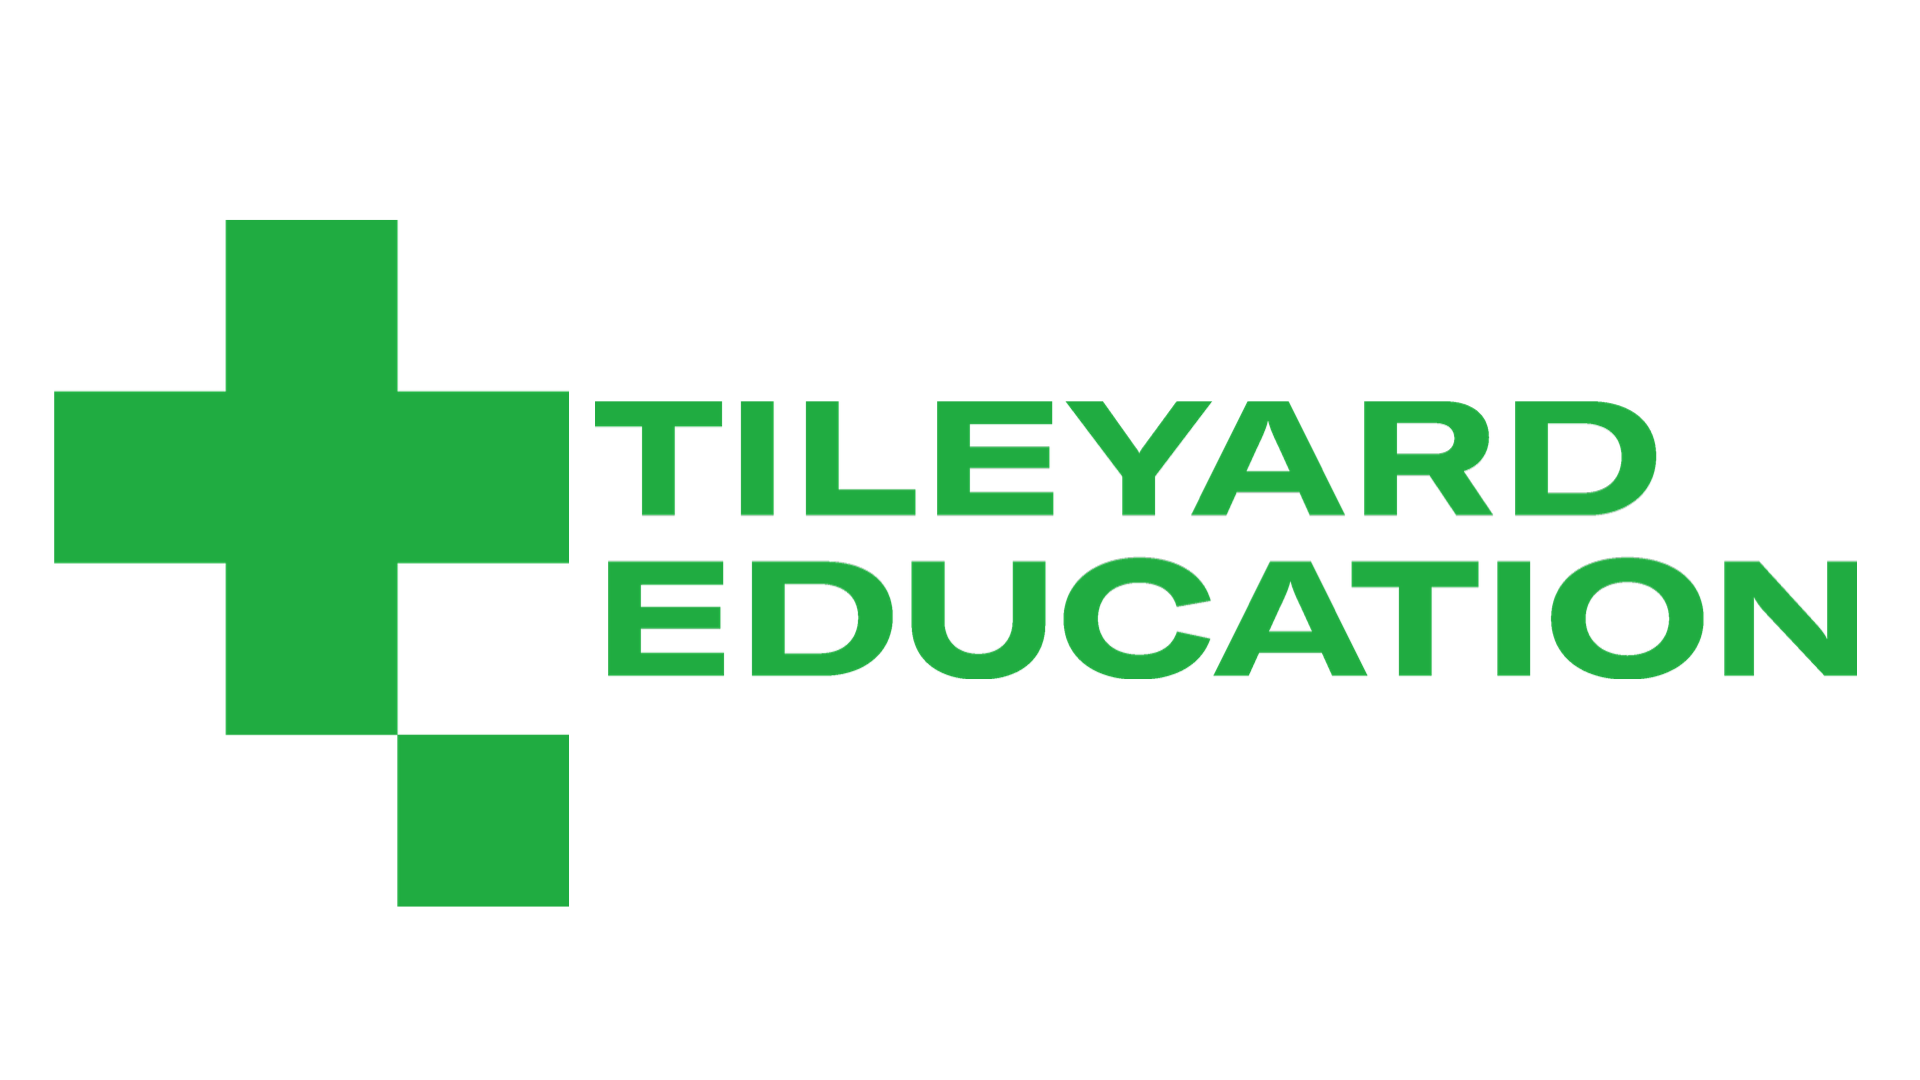 Tileyard Education is Bridging the Gap Between Ambition and Industry